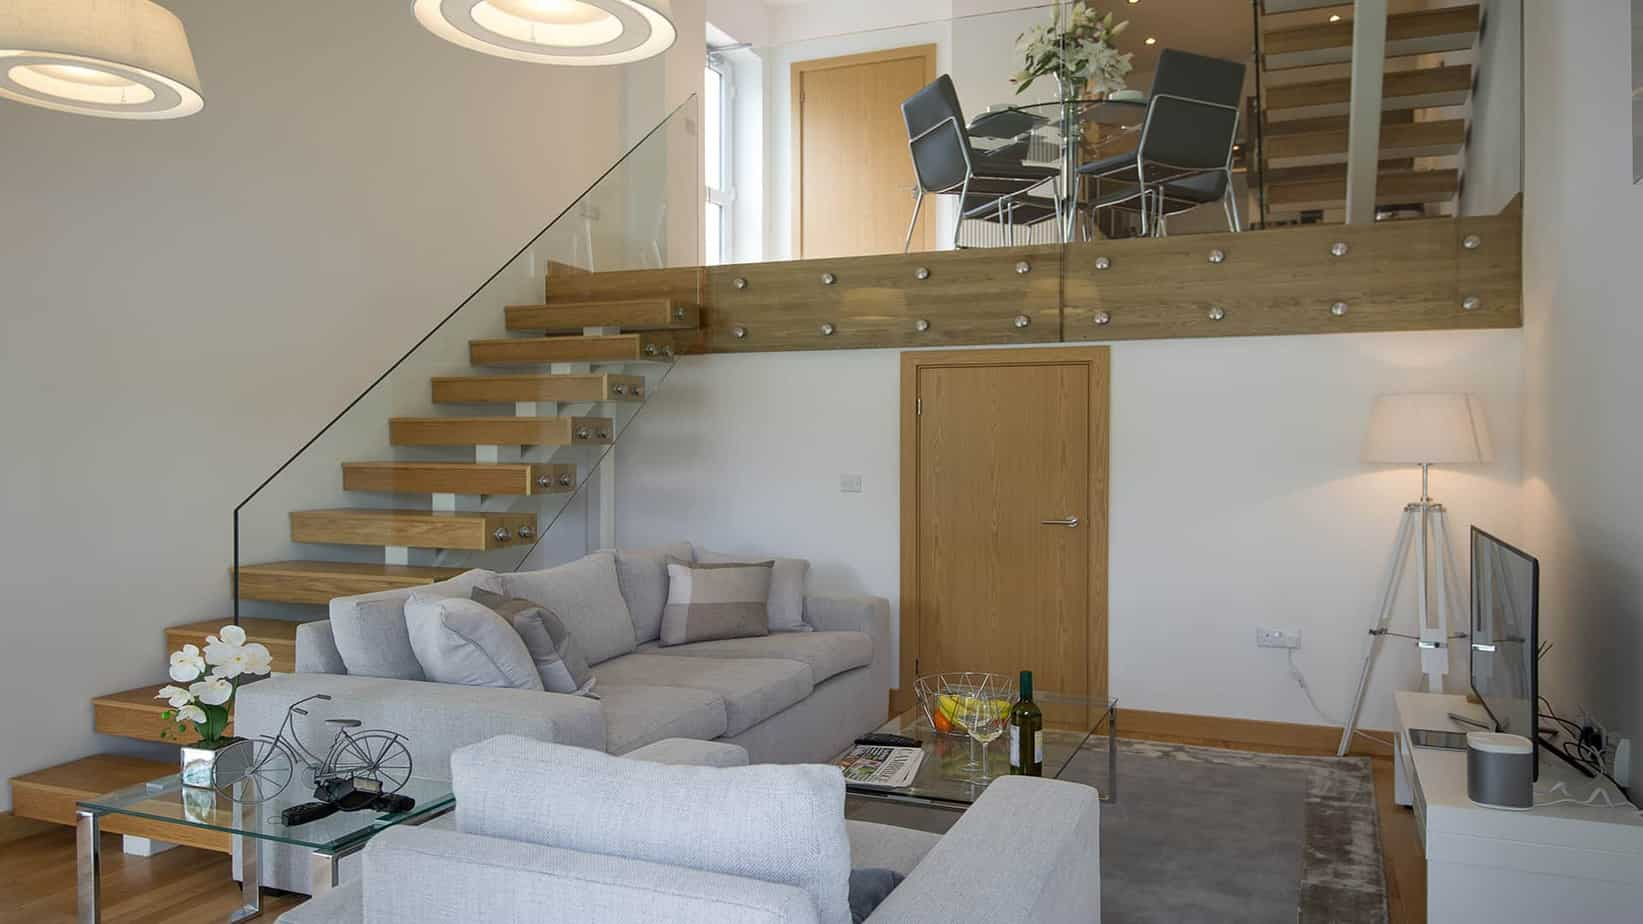 Tailored Stays Cambridge Serviced apartment the executive townhouse